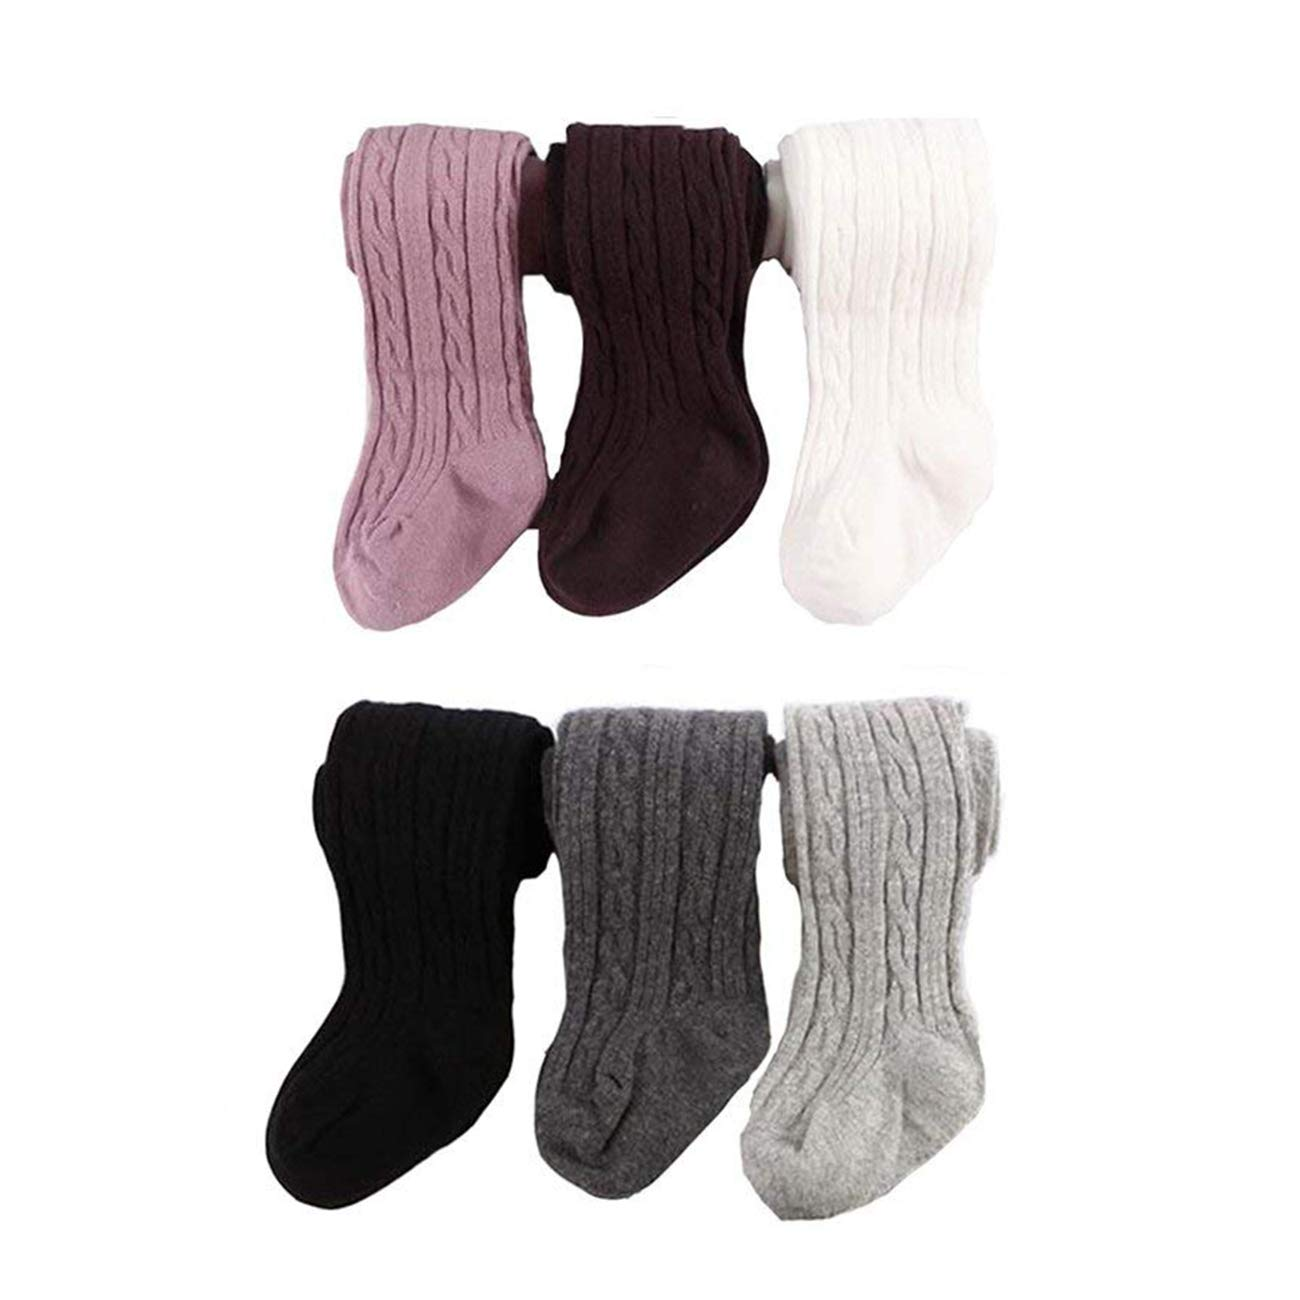 6 Pairs Baby Infant Toddler Gilrs Cable Knit Tights Cotton Warm Leggings Stocking Pants (0-6M) by Sywwlov